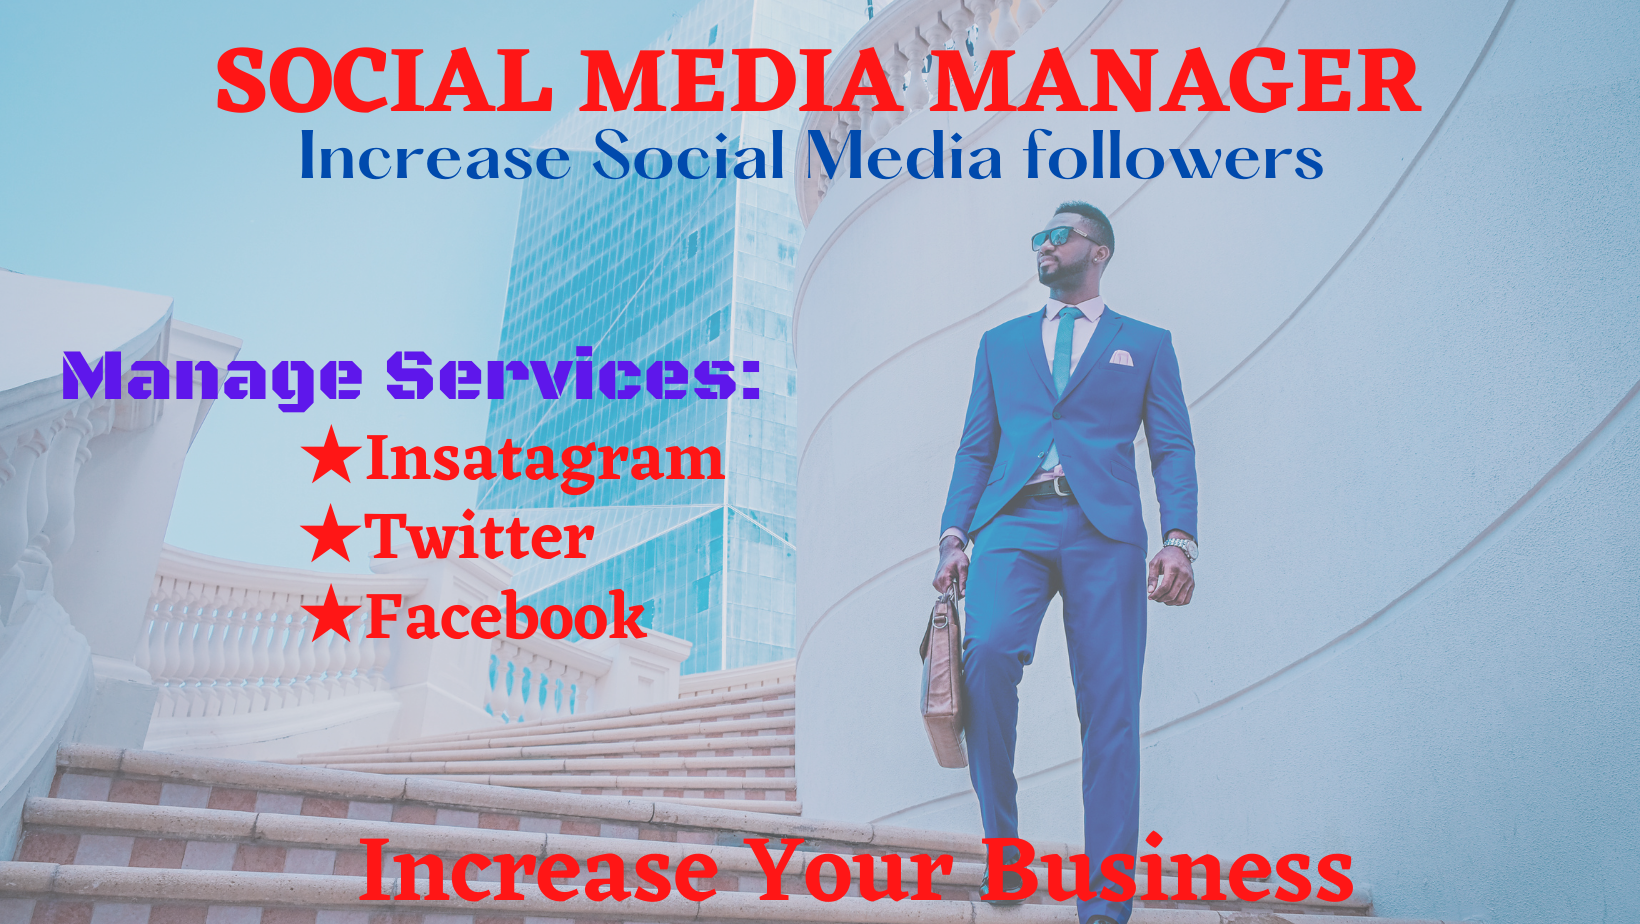 I Will be Your Professional Social Media Manager